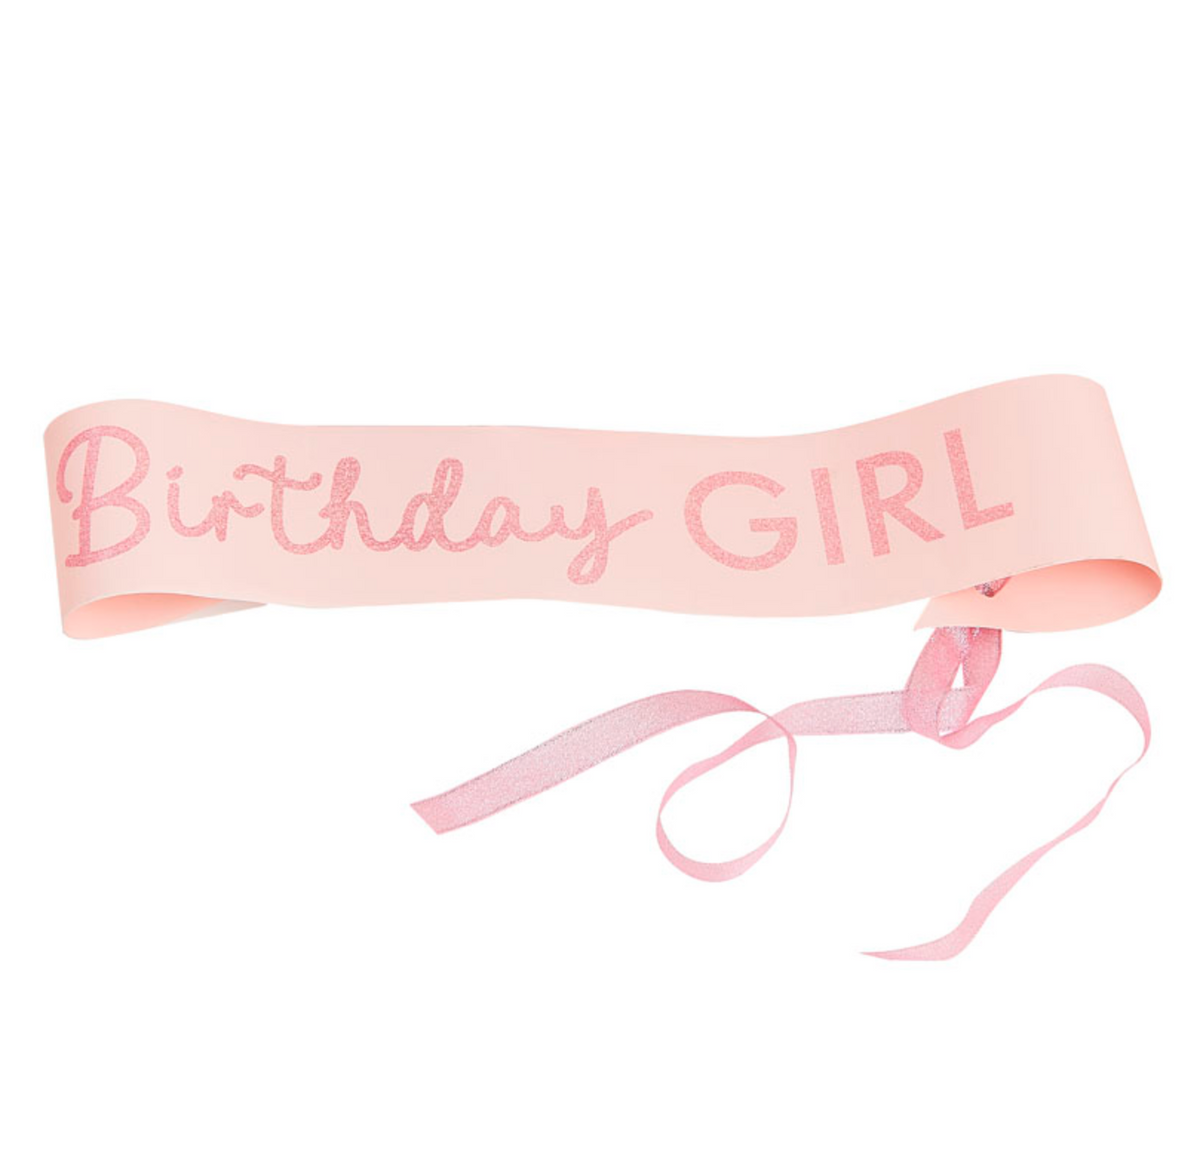 Sleepover / Pamper Party - Birthday Girl Sash